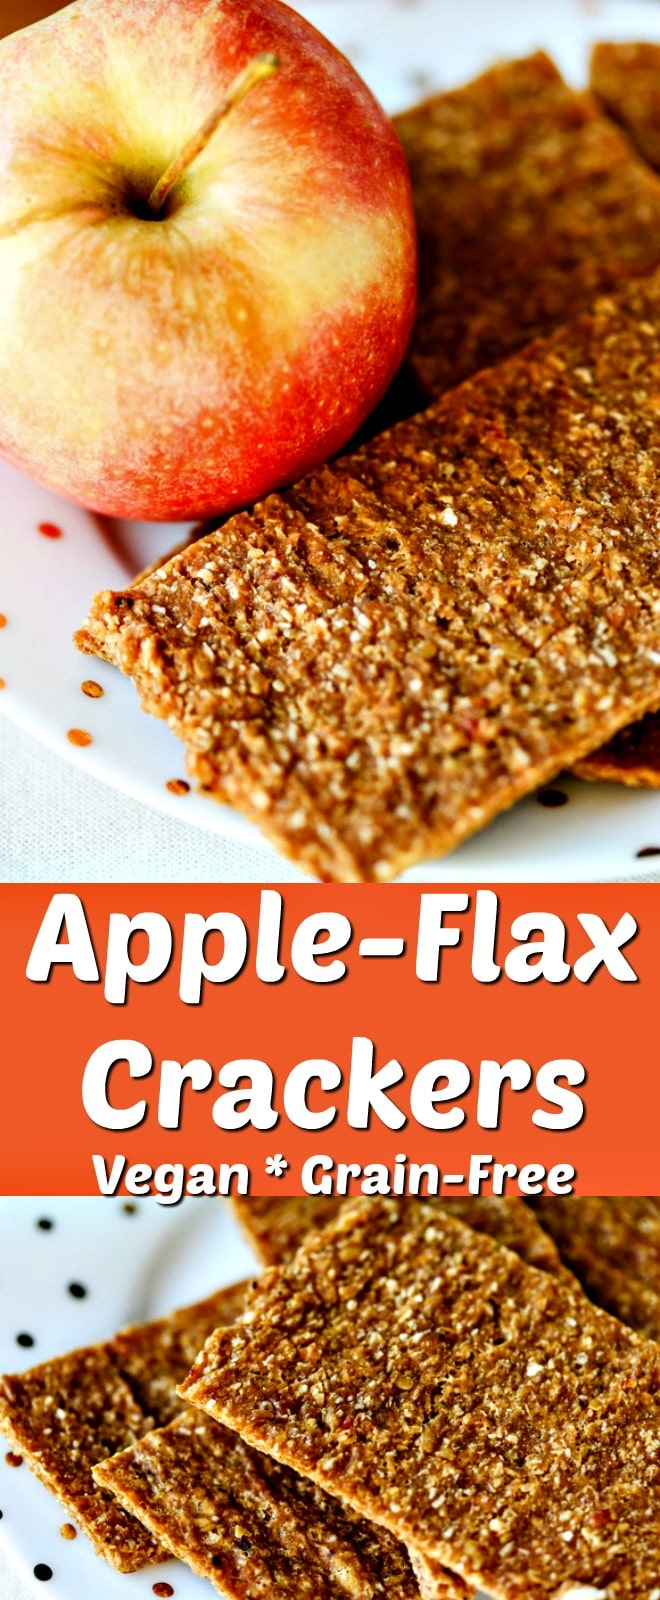 These healthy Apple-Flax Crackers are made raw and vegan using the dehydrator. They're a sweet and healthy treat! | #apples #healthyfood #glutenfree #rawfood #grainfree #rawvegan